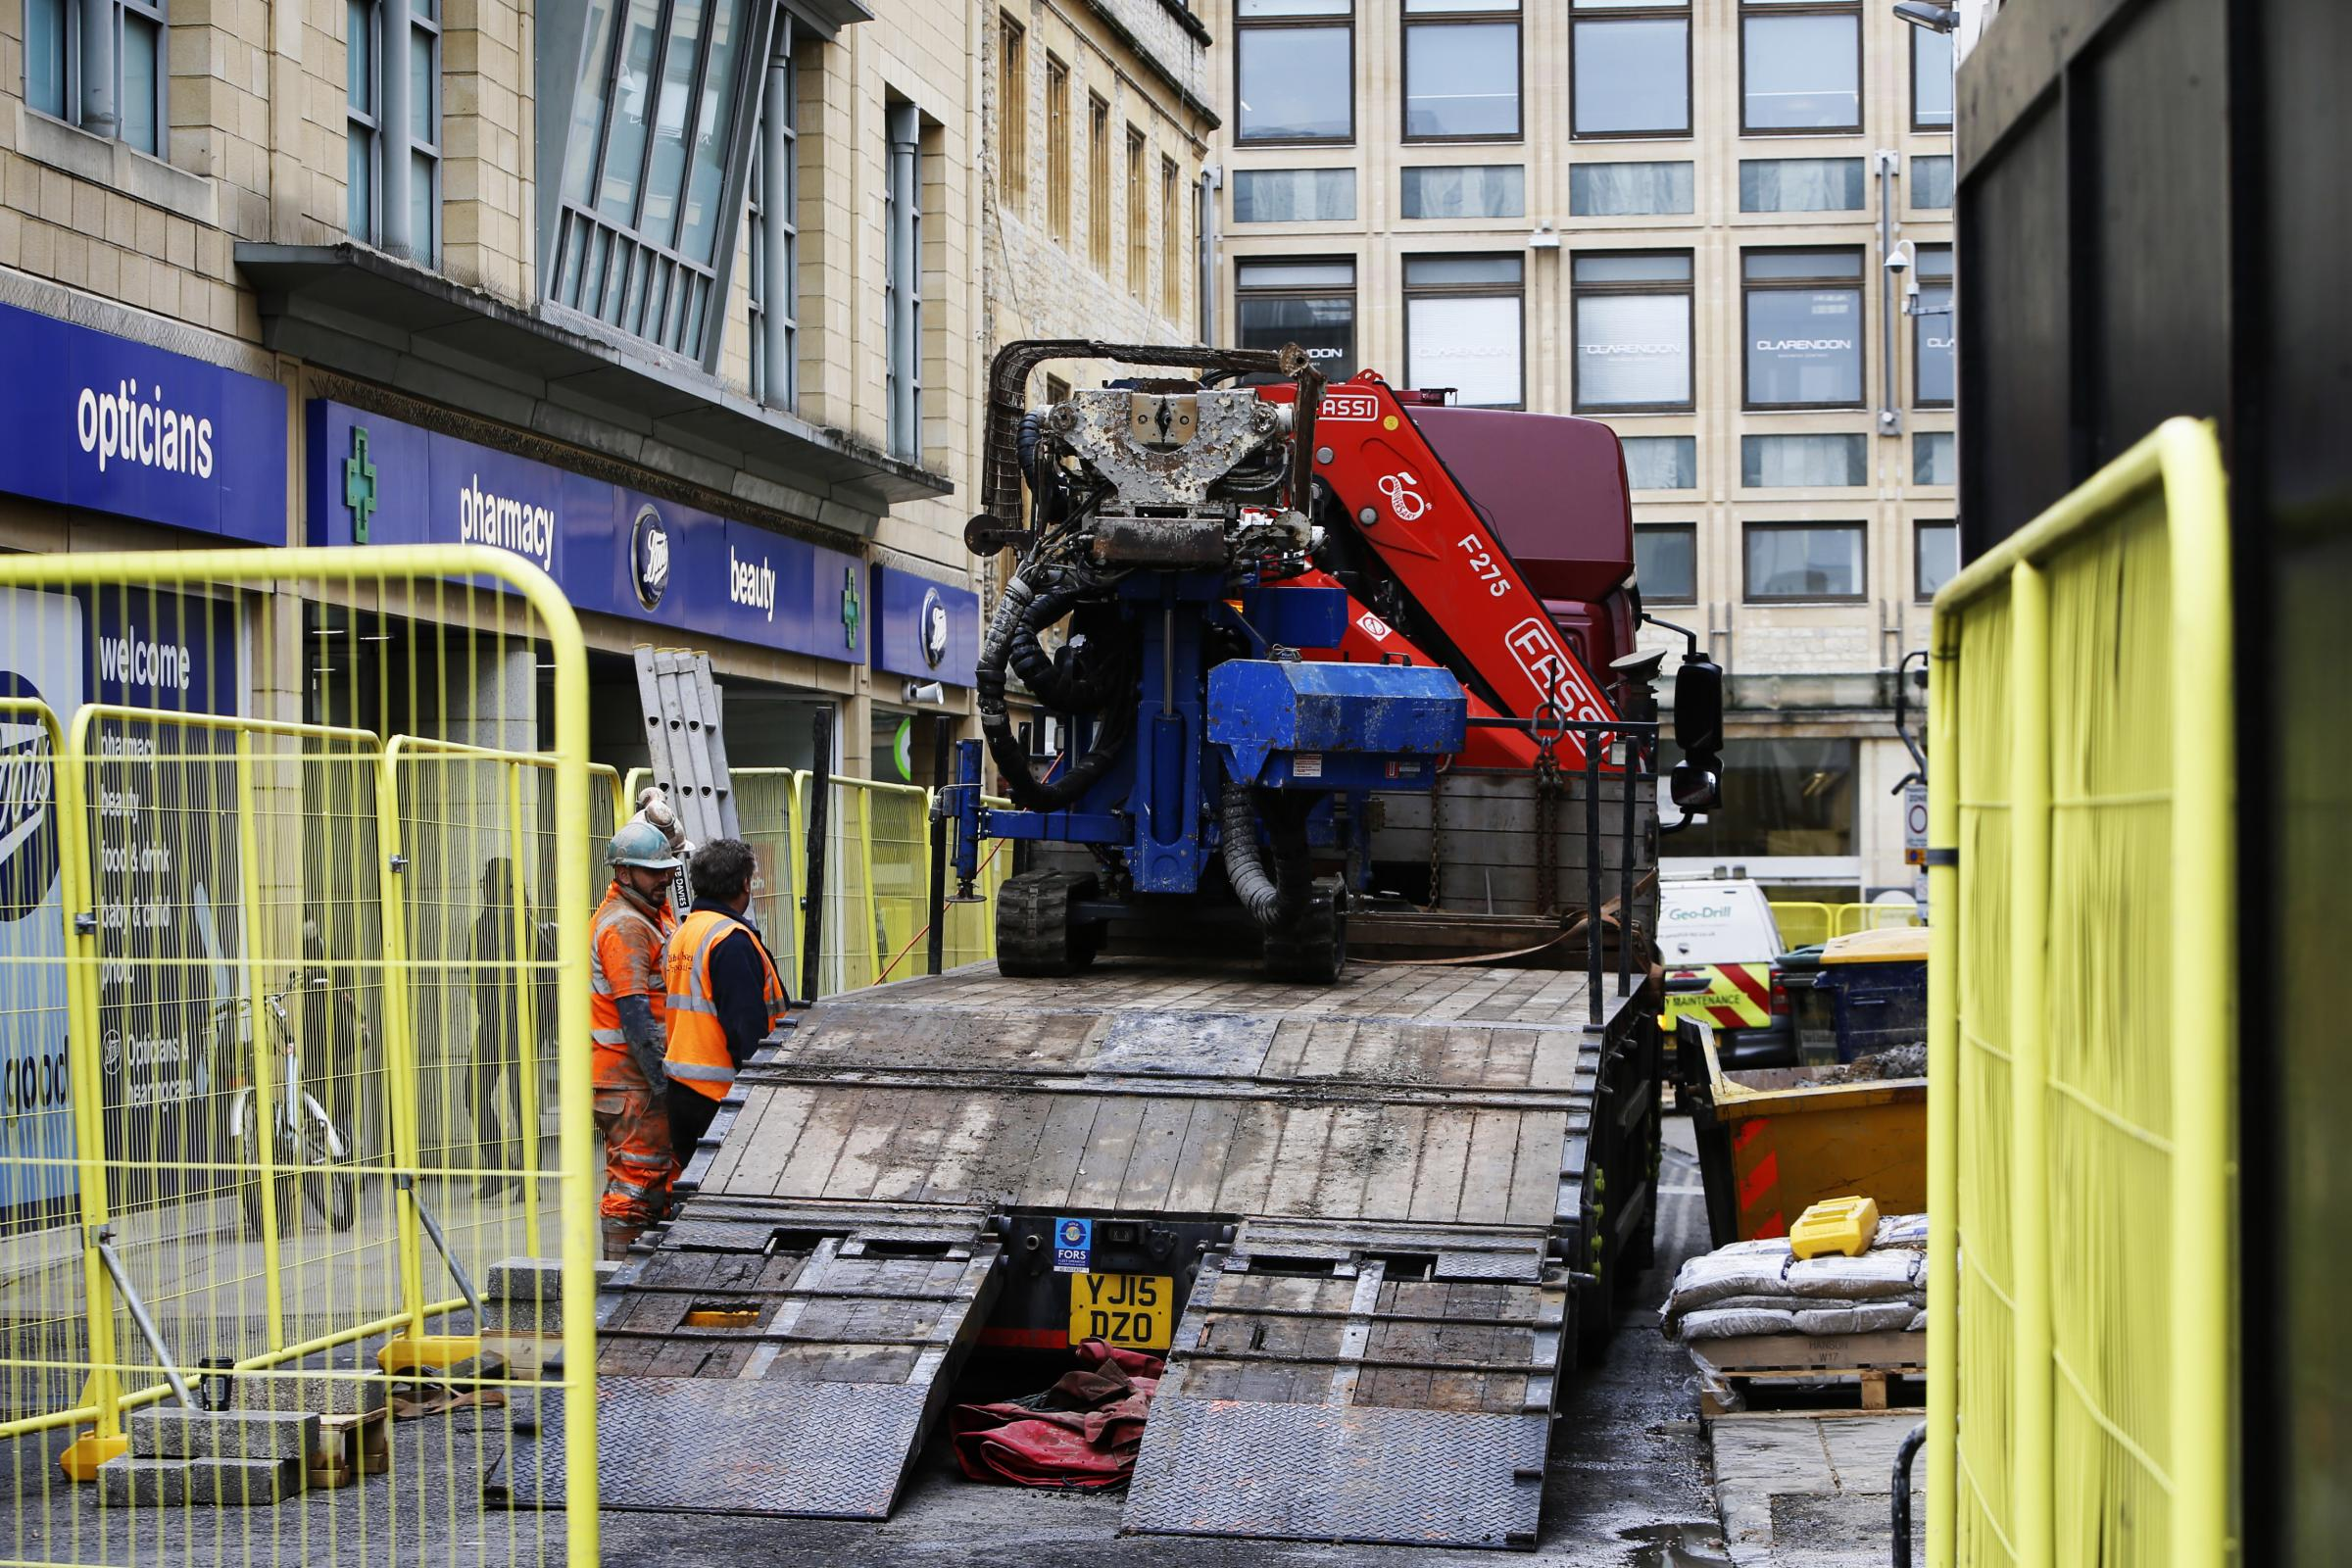 074598397bcc CONSTRUCTION lorries are now being driven into Cornmarket in Oxford as work  is stepped up on a £36m scheme to create new shops and student  accommodation.